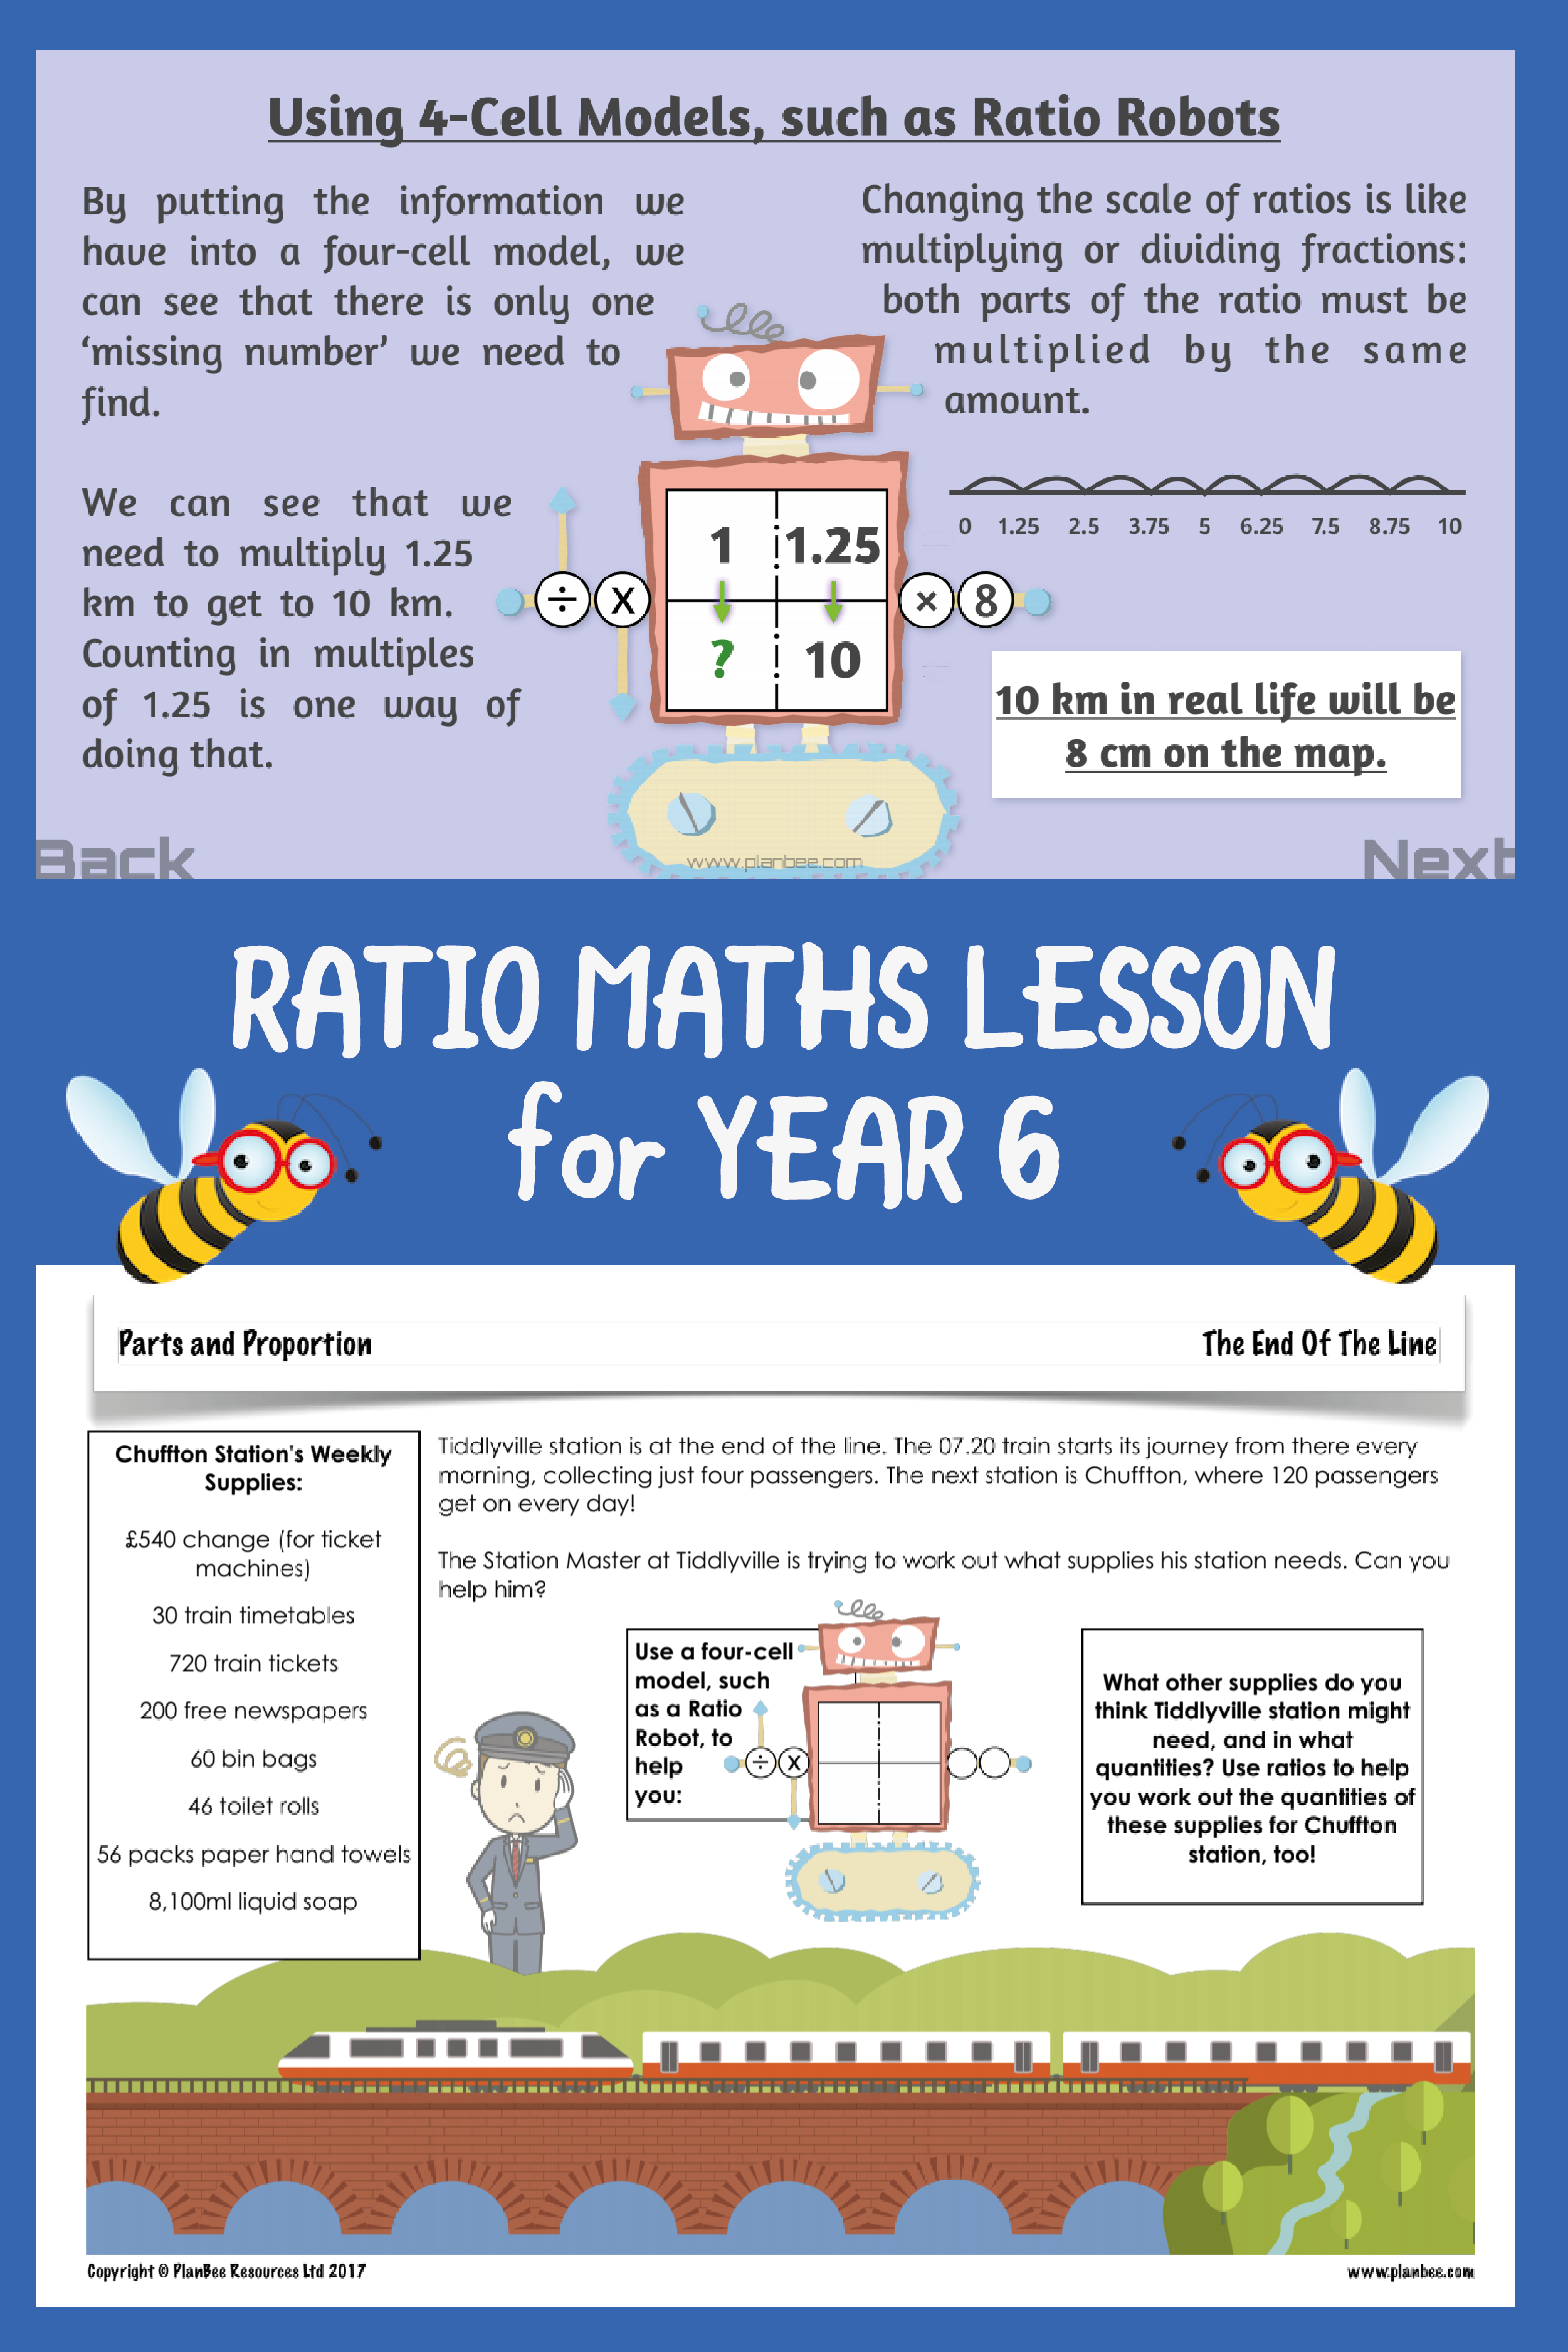 Parts And Proportion How Do We Use Ratios In Real Life